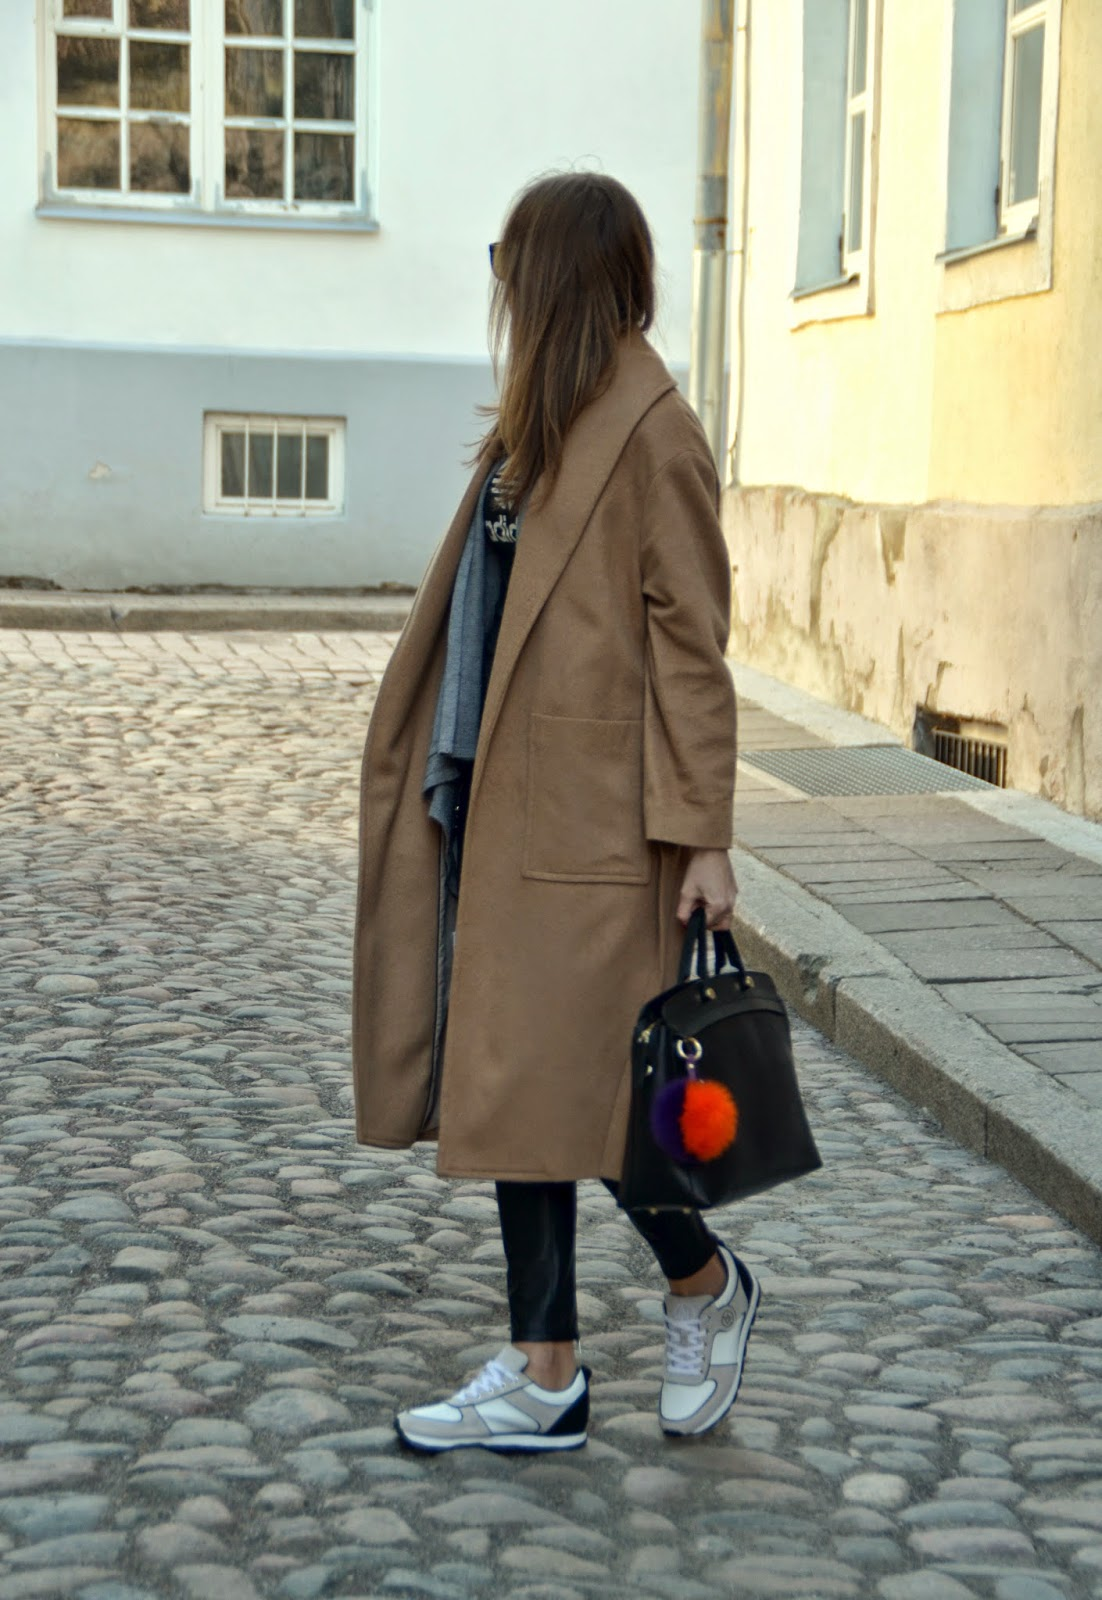 mango-camel-coat-armani-jeans-sneakers-furla-bag-pom-pom-key-ring